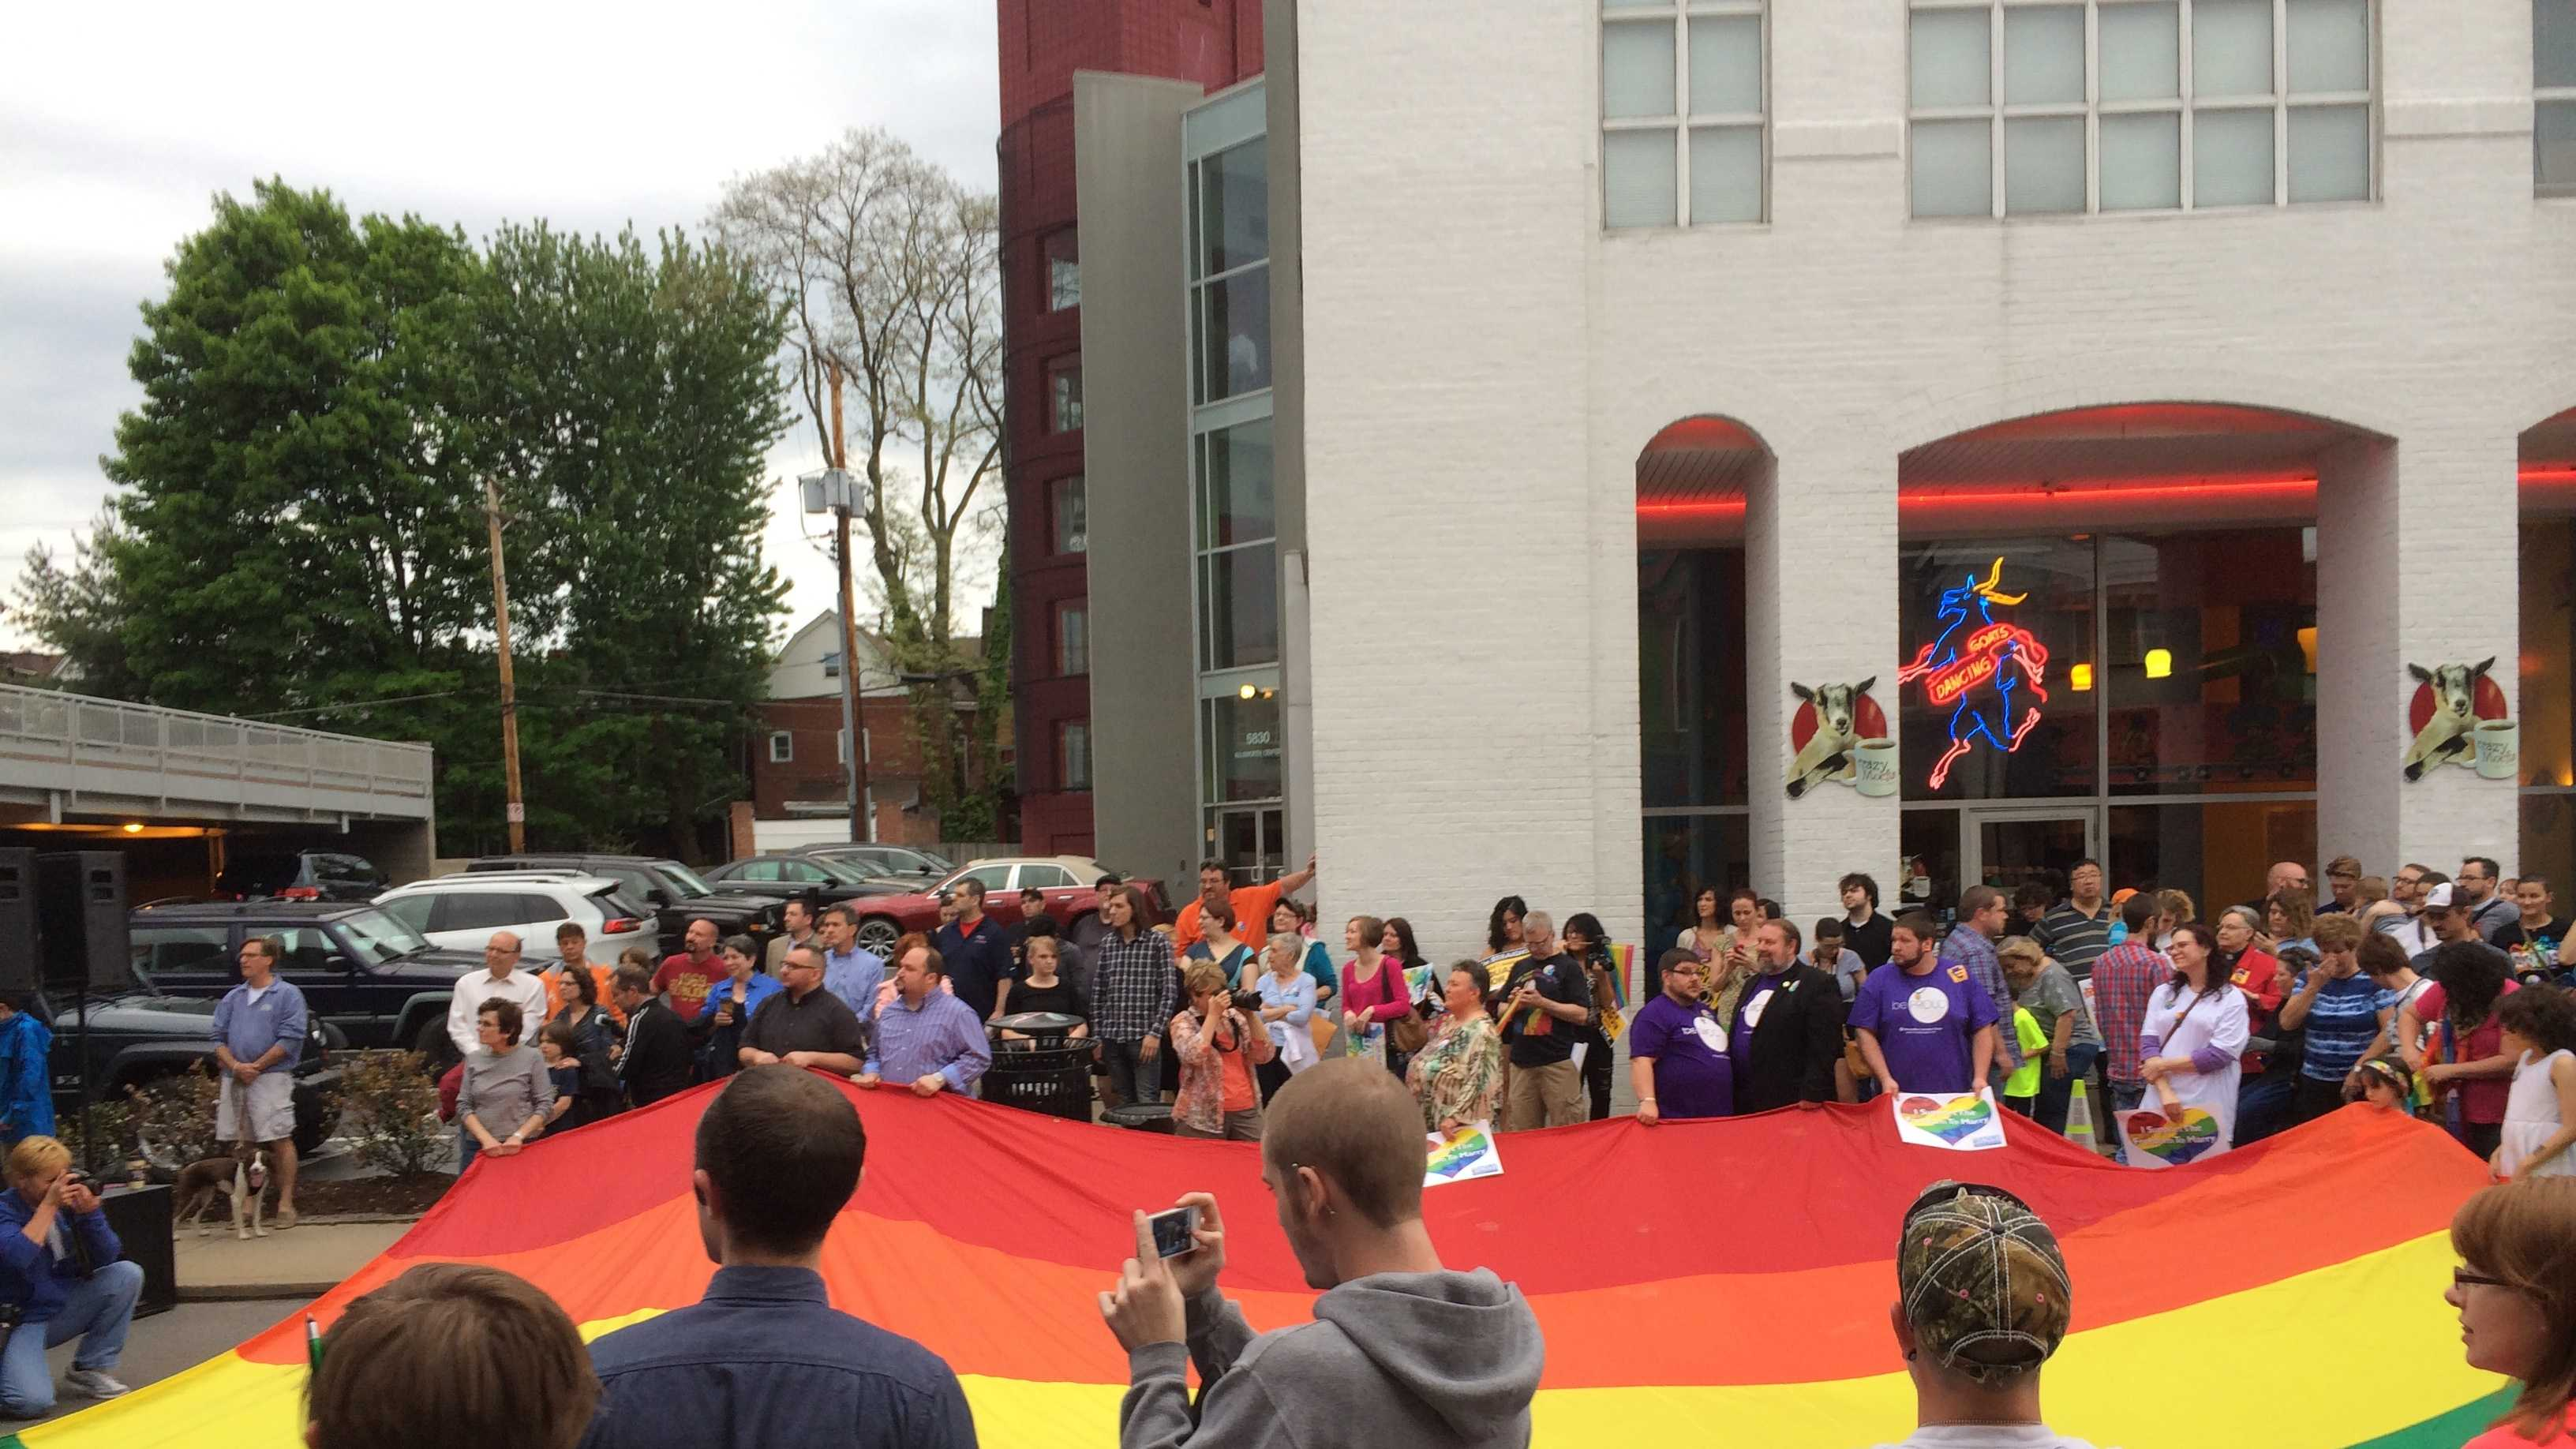 A rally for the LGBT community is held Tuesday night in Shadyside